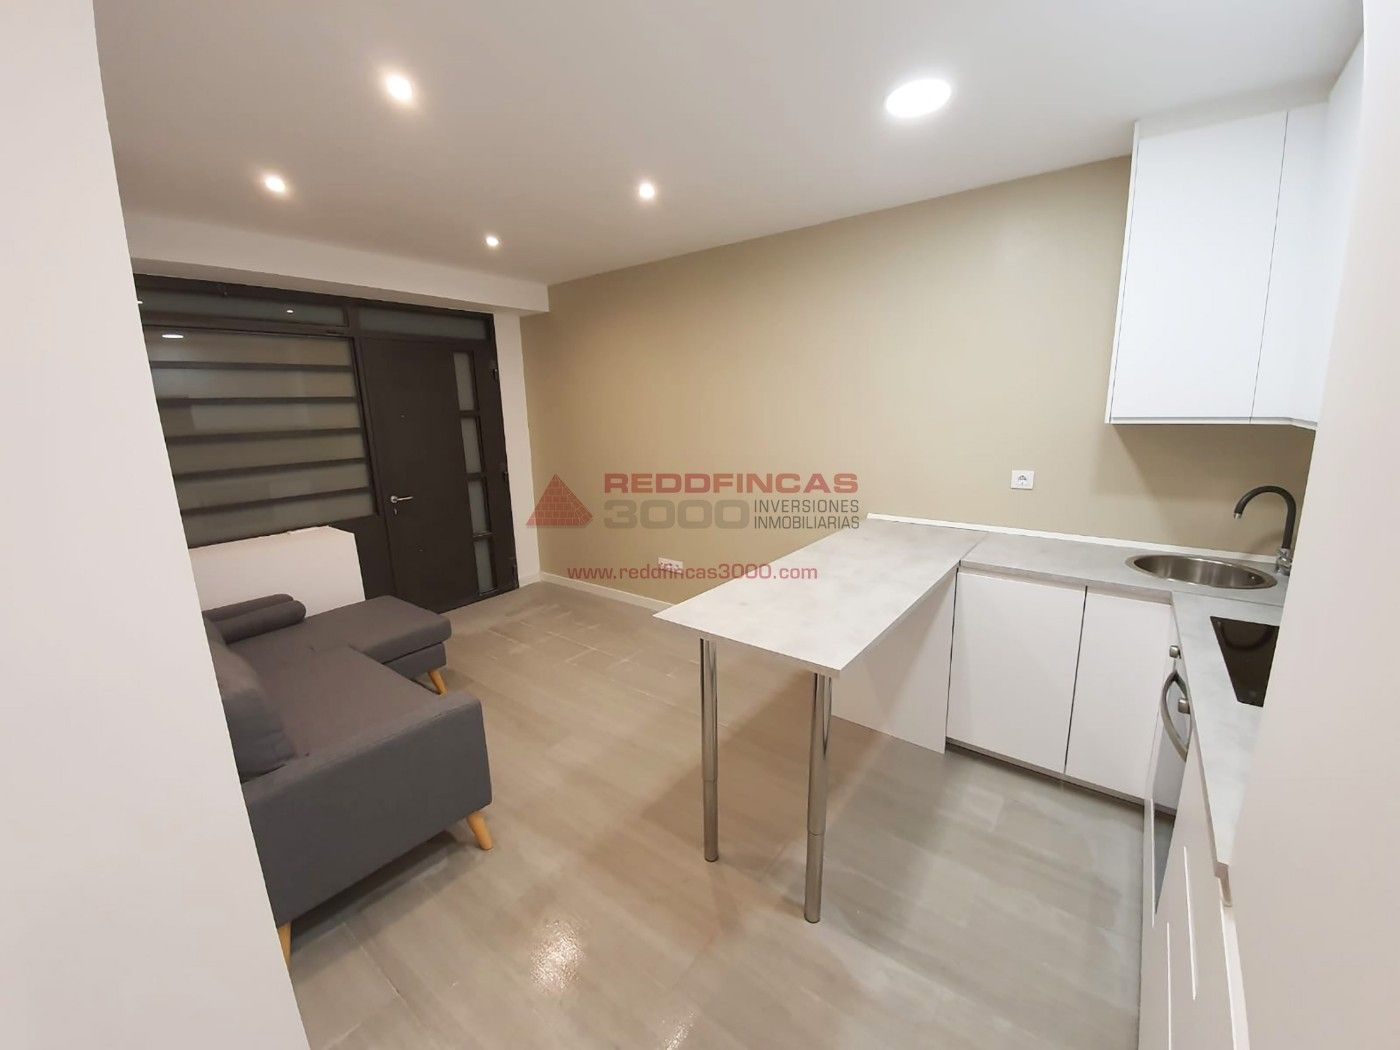 Miete Loft  Carrer josep ciurana. Local ideal home office de 38m2